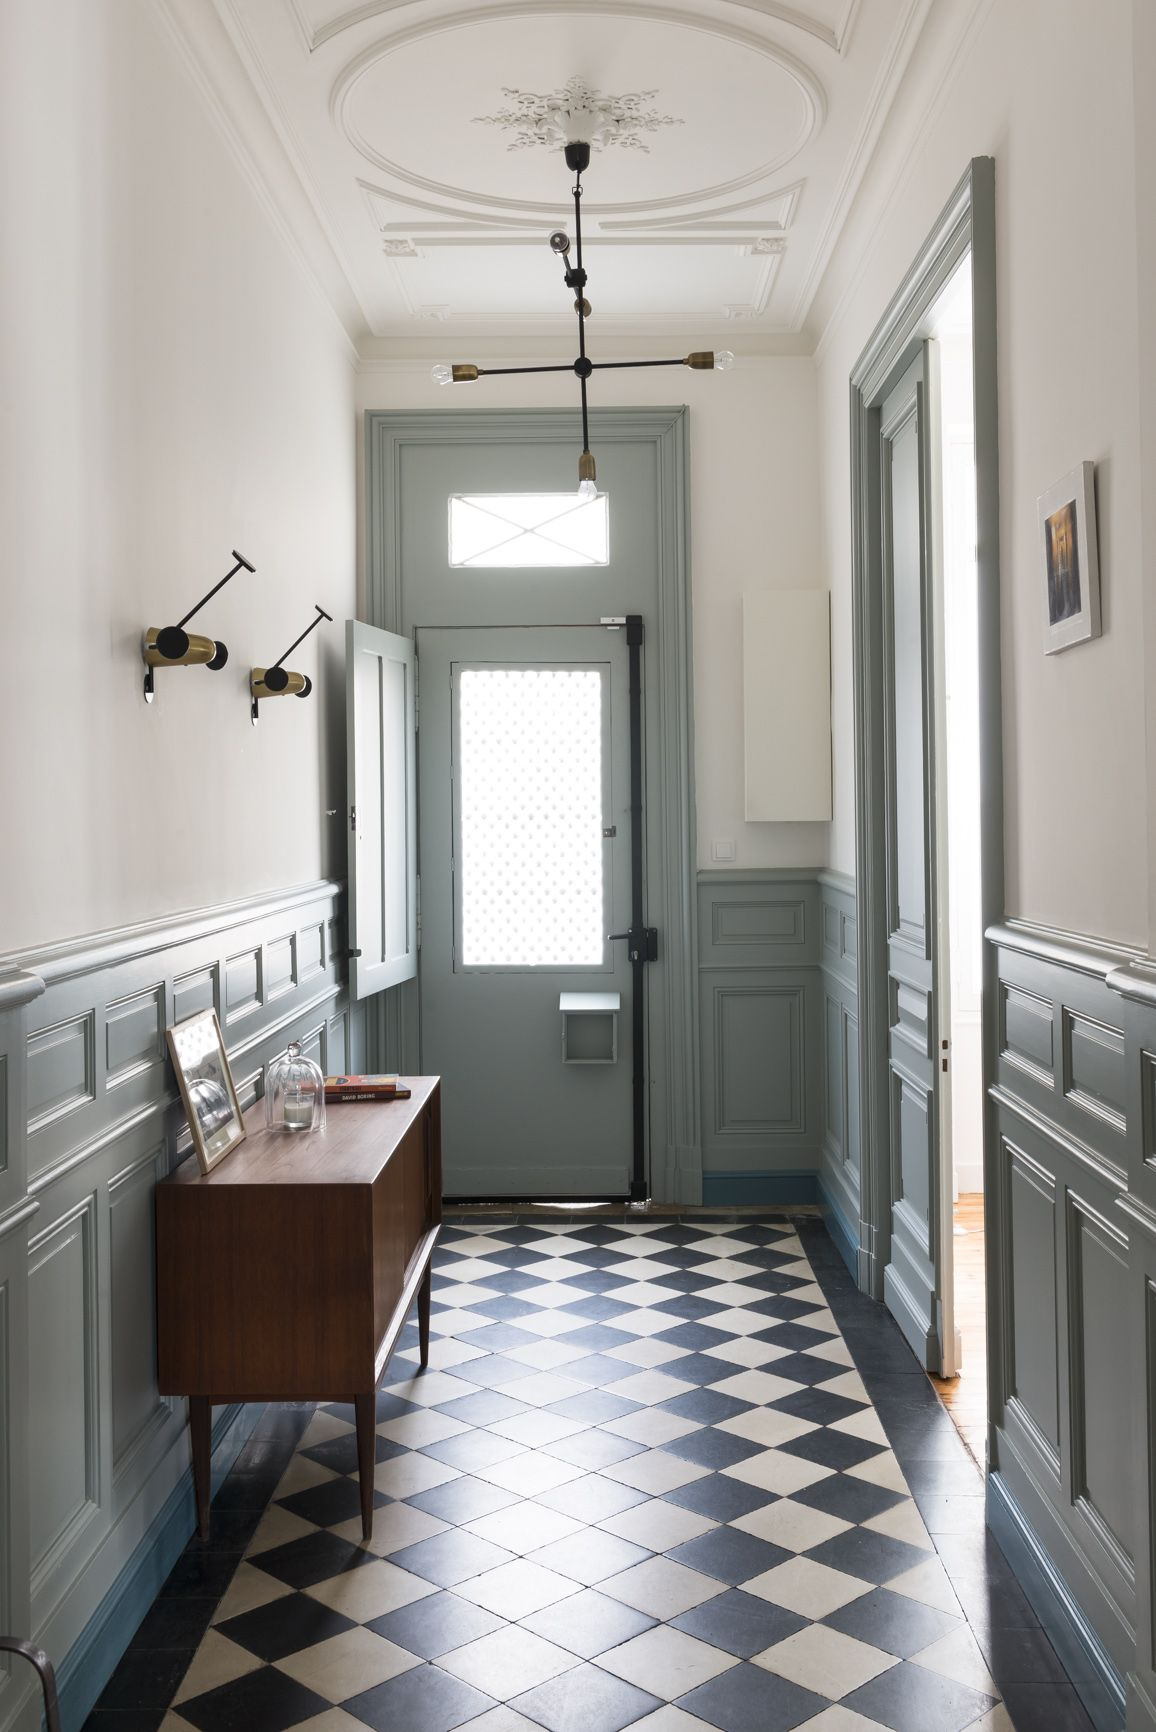 Best 25 maison bourgeoise ideas on pinterest boiseries for Carrelage sol design pour maison